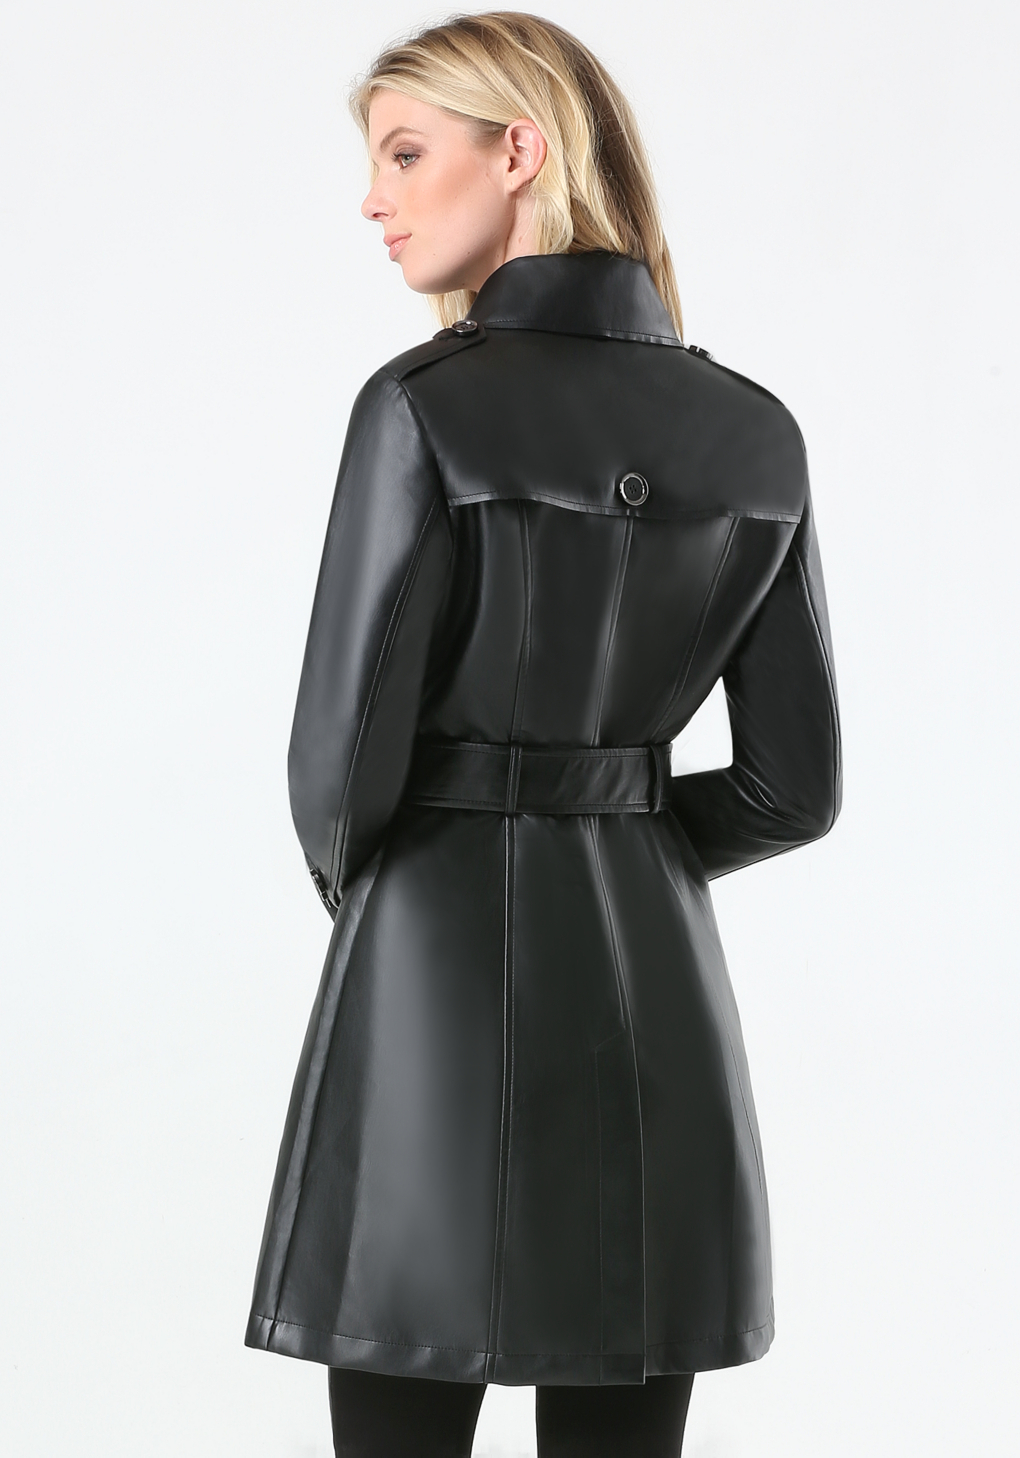 74ea89577 Black Faux Leather Trench Coat - Tradingbasis